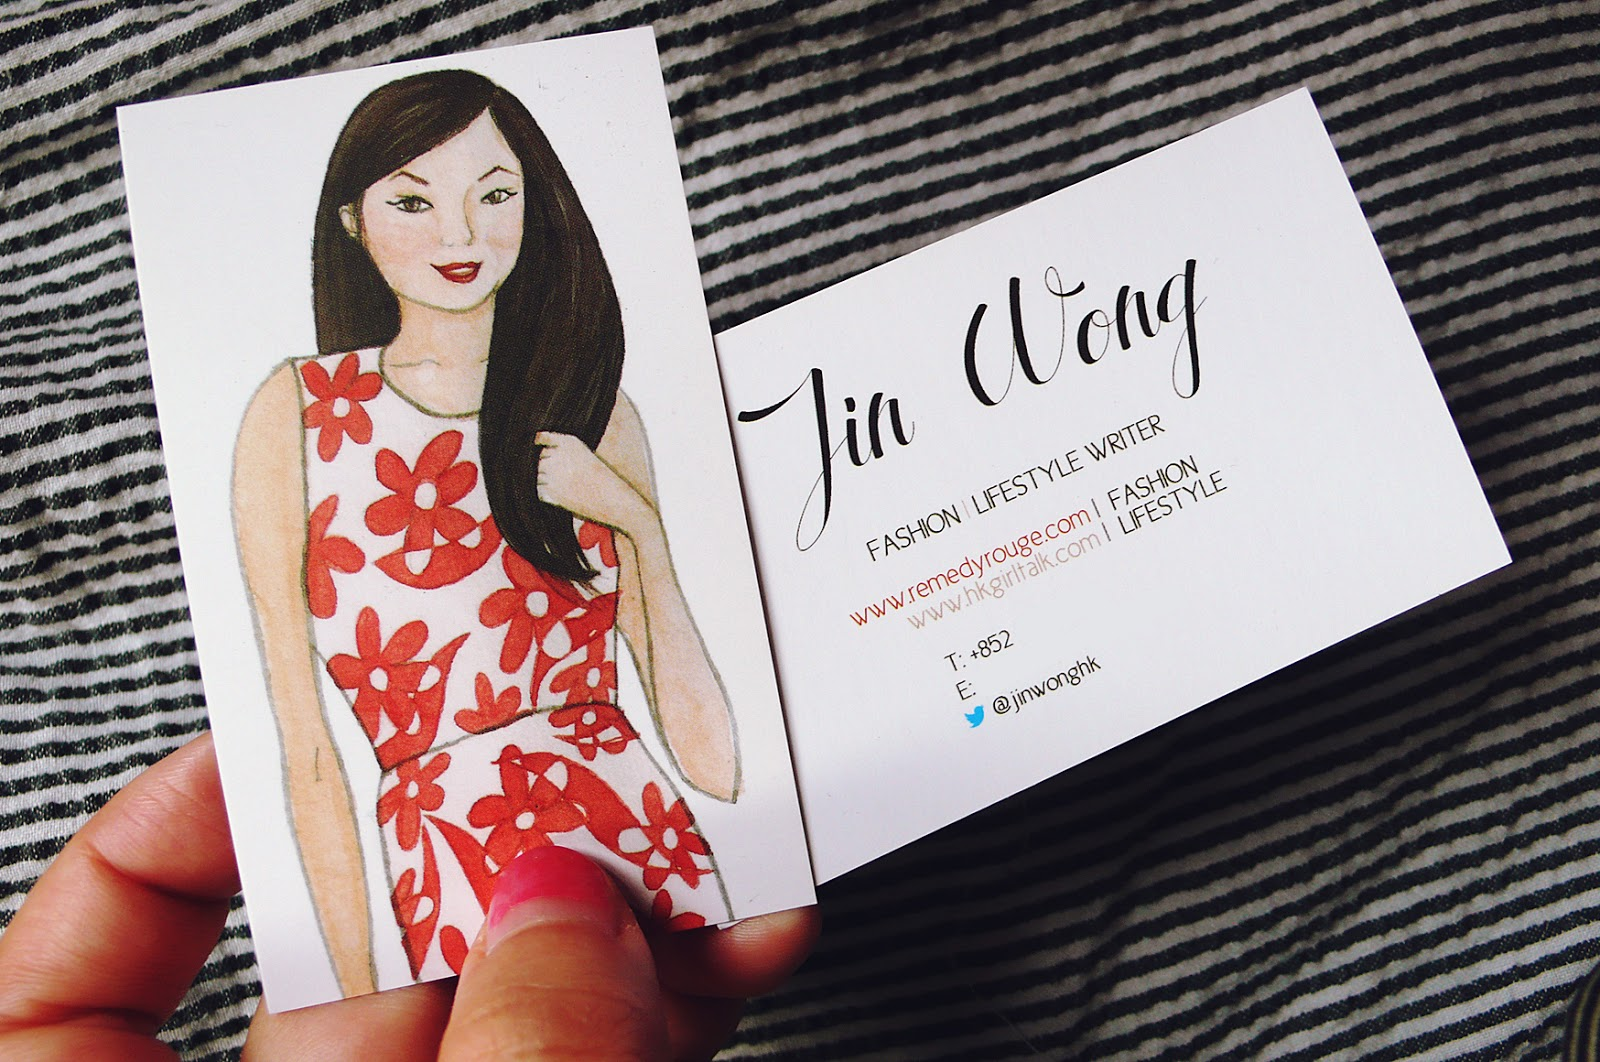 Kitty N. Wong Draws: Red Carded! A Pretty Illustrated Business Card ...